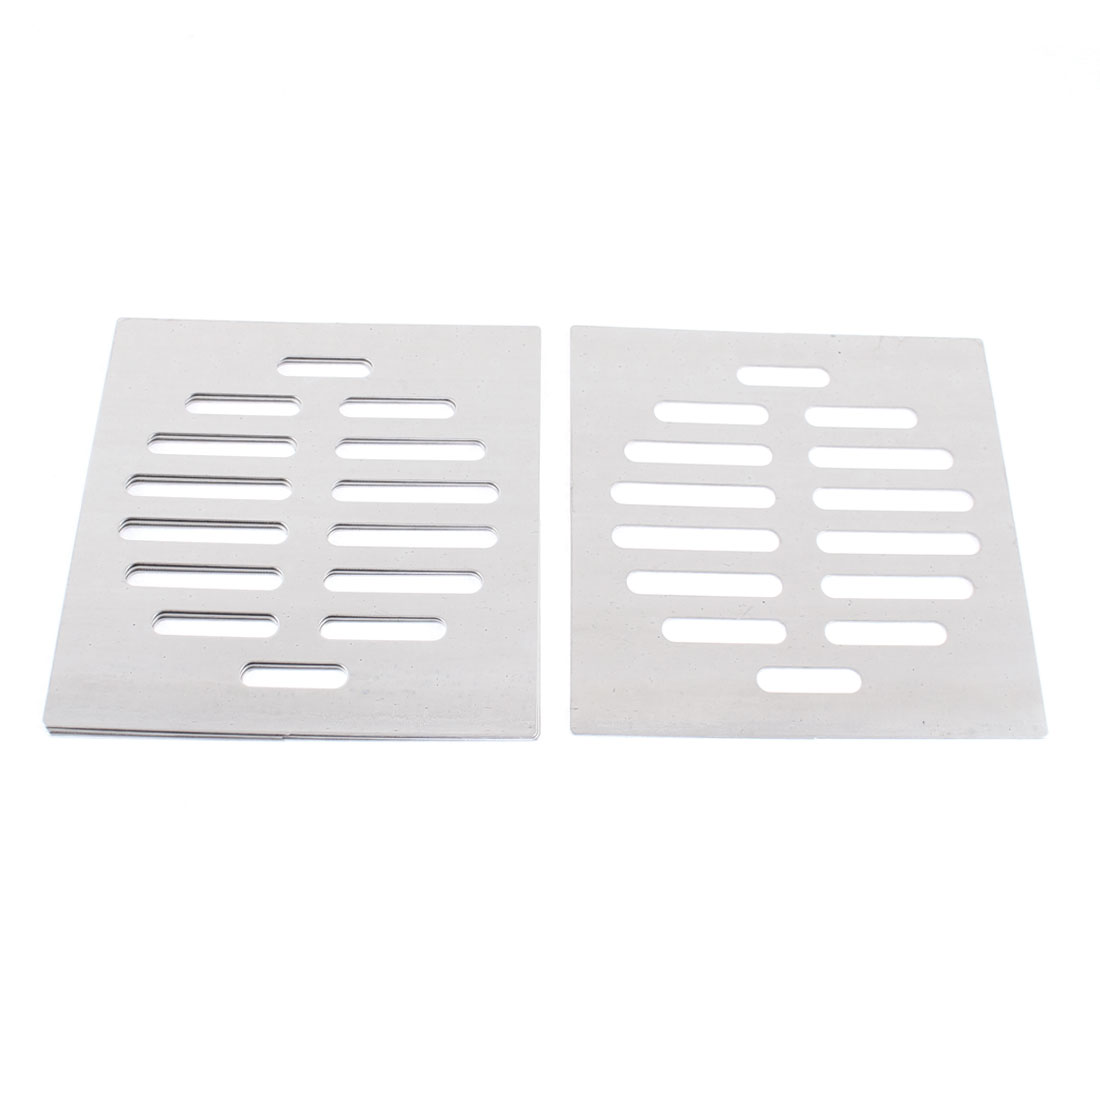 "Stainless Steel Kitchen Bathroom Square Floor Drain Cover 4.4"" 11.3cm 4pcs"